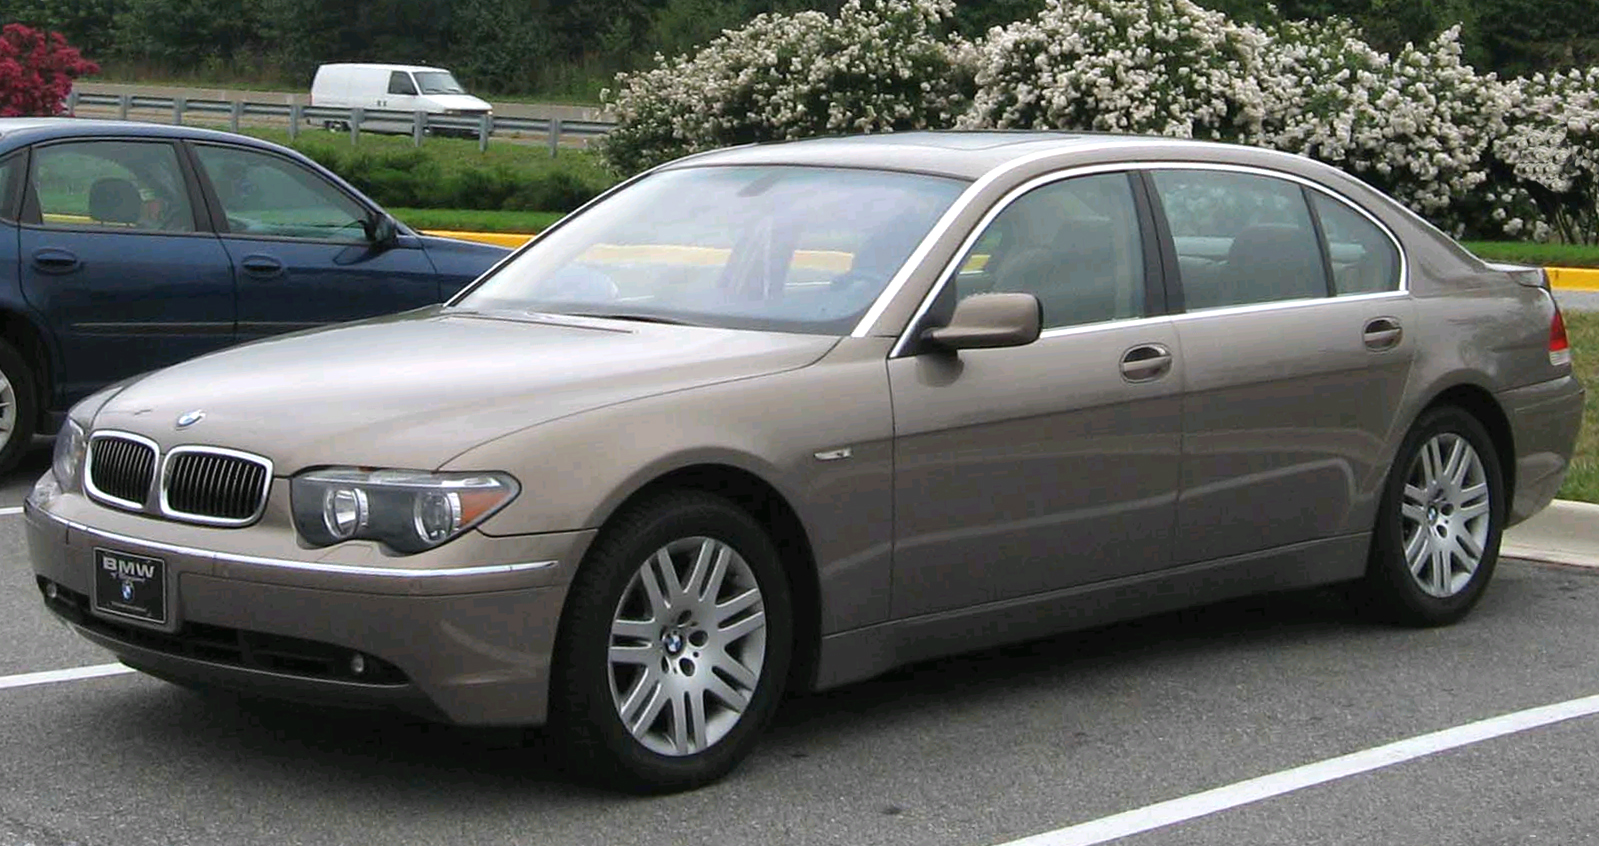 file:03-05 bmw 745li - wikimedia commons